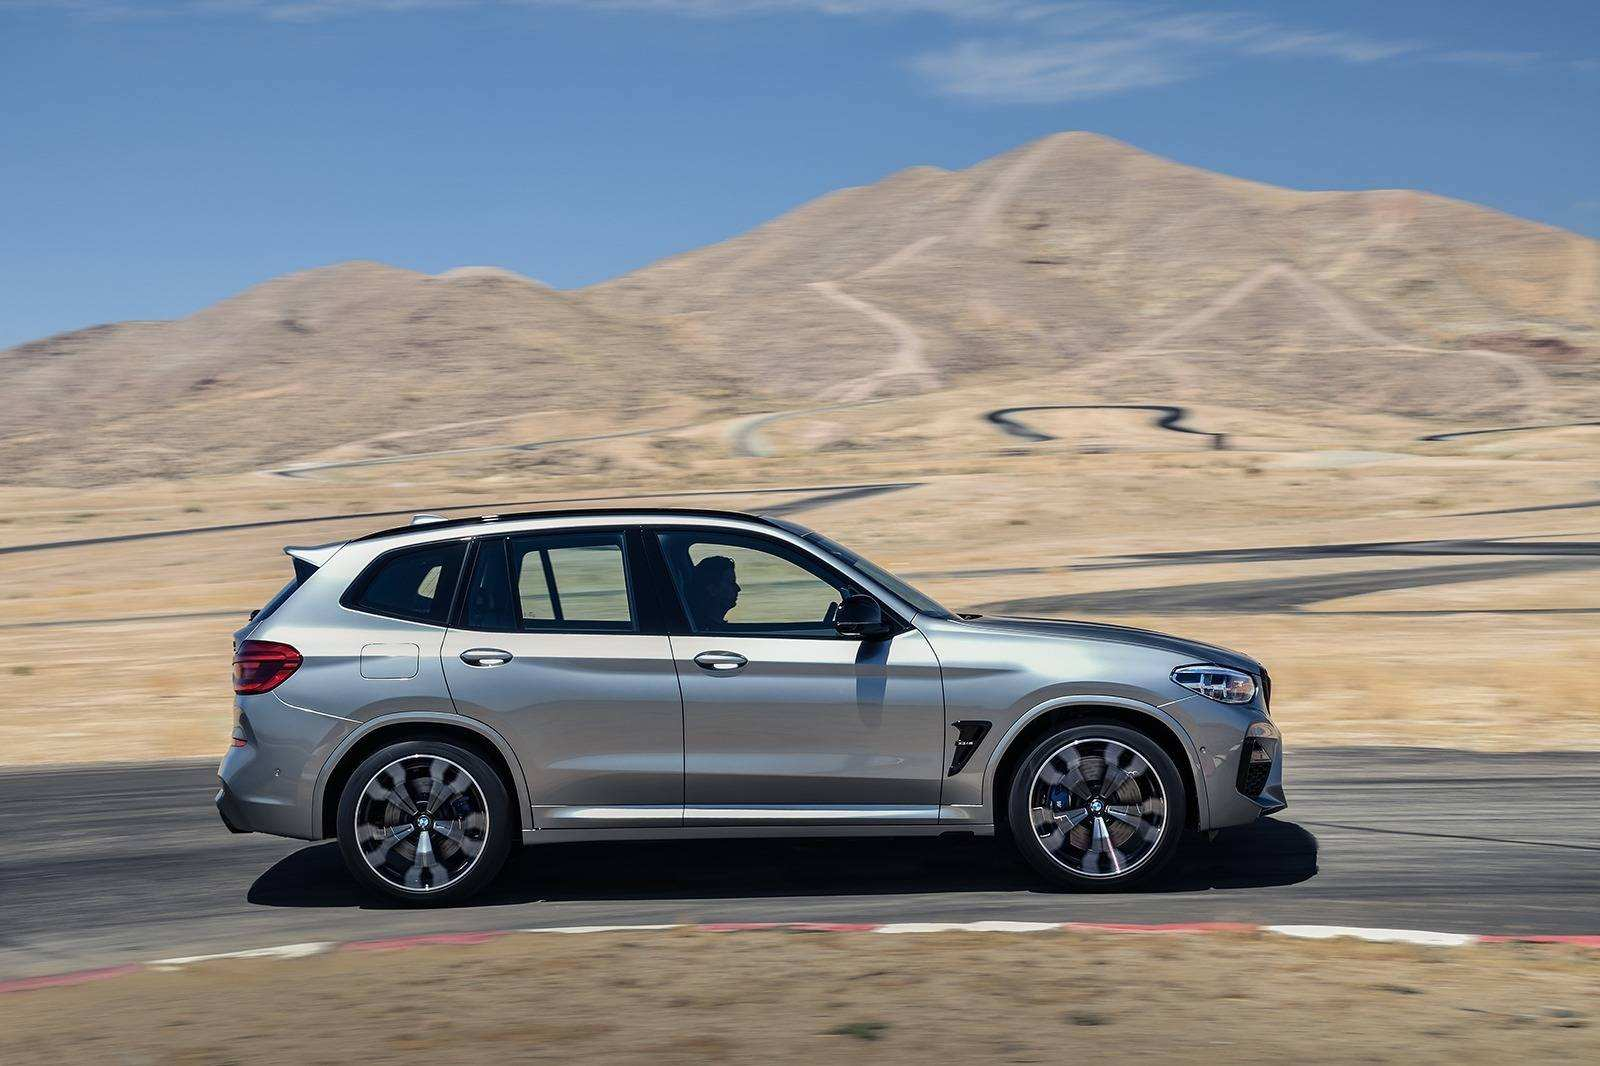 78 Great 2020 Bmw X3 Release Date Rumors for 2020 Bmw X3 Release Date